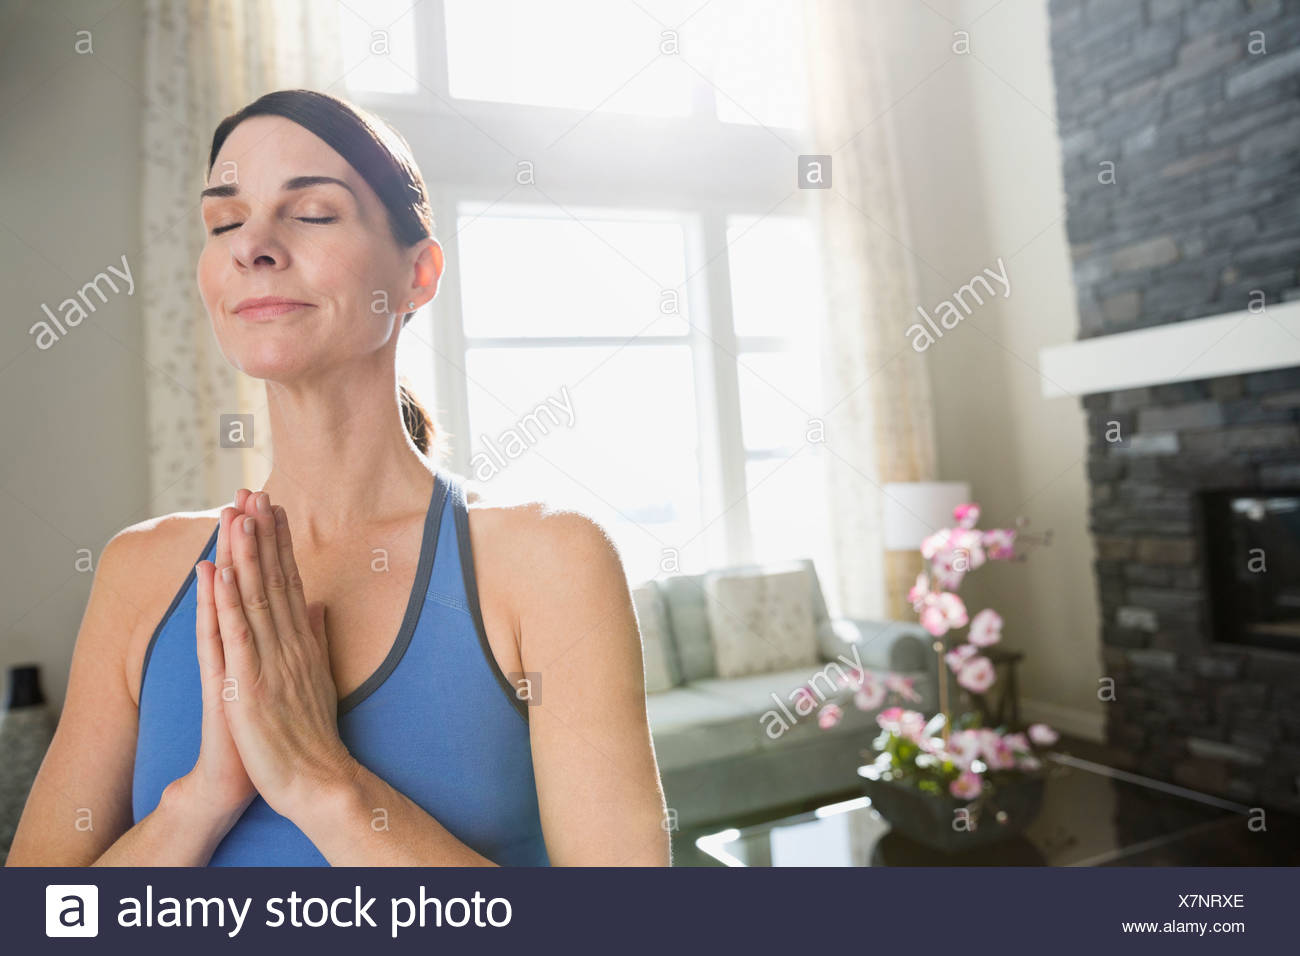 Mature woman with hands clasped meditating at home - Stock Image